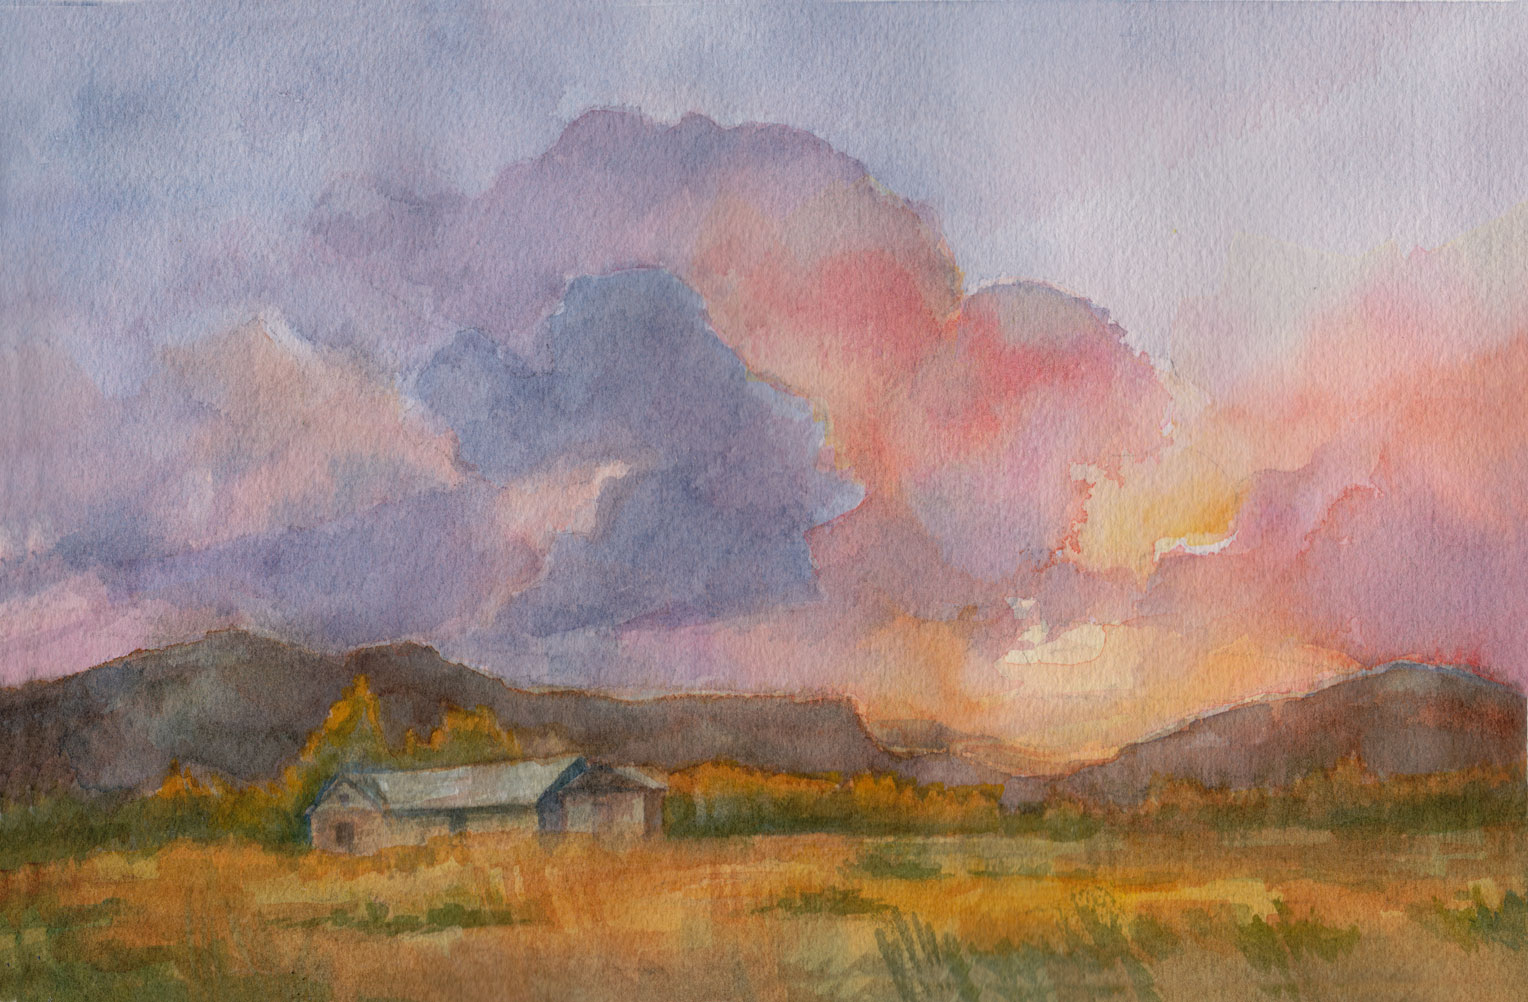 study for Sunset on the homestead - Watercolour 6.5 x 10\